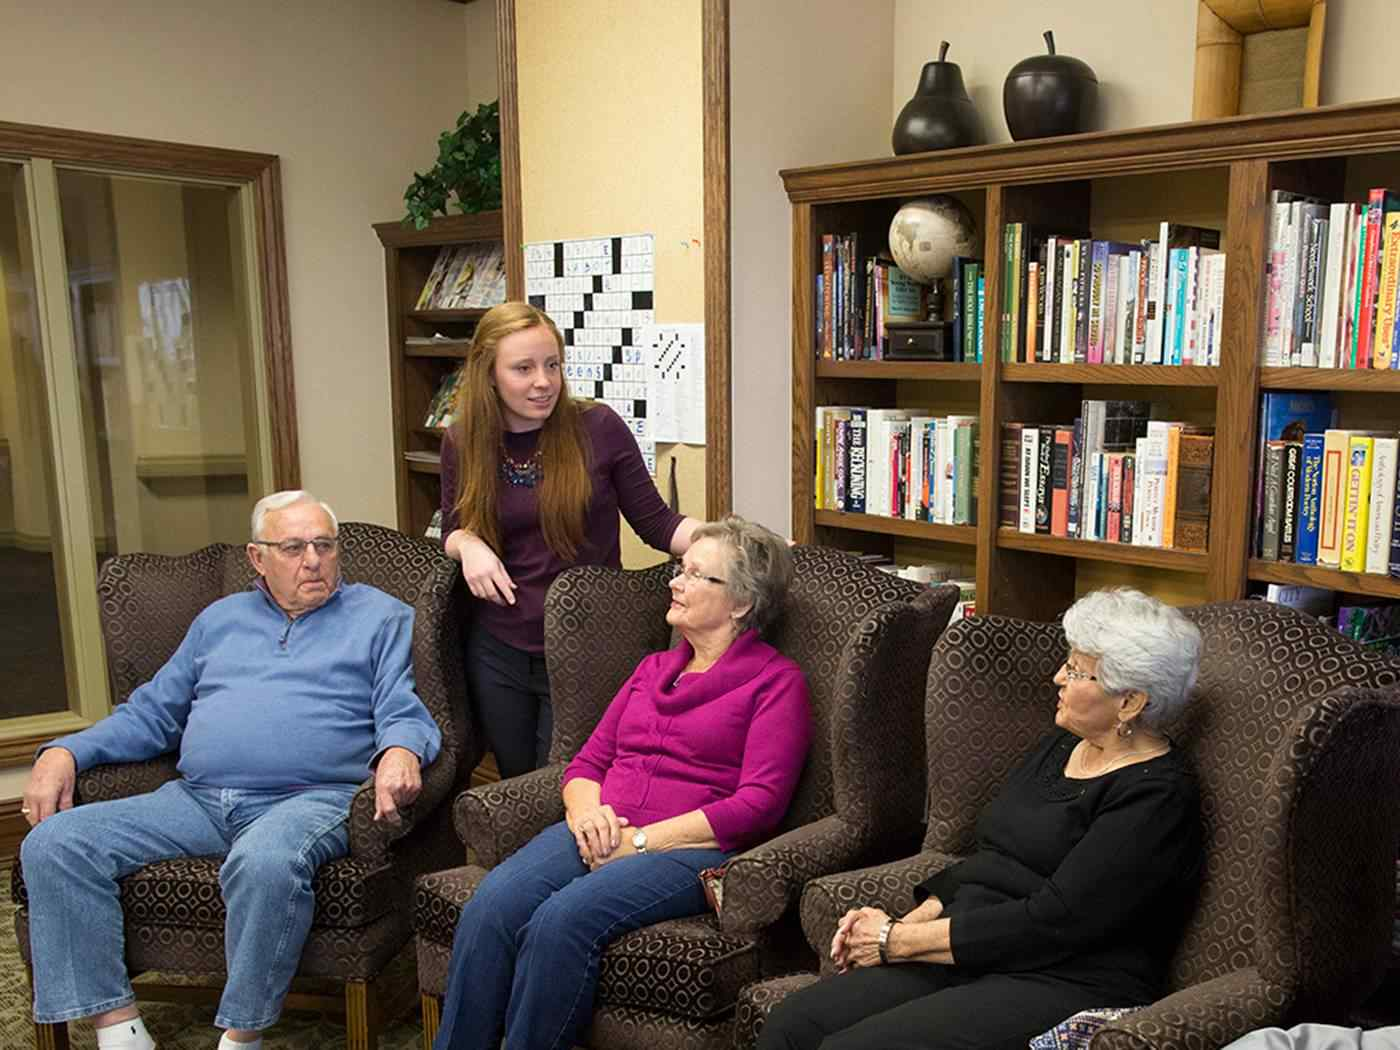 Student gathers with elder patients